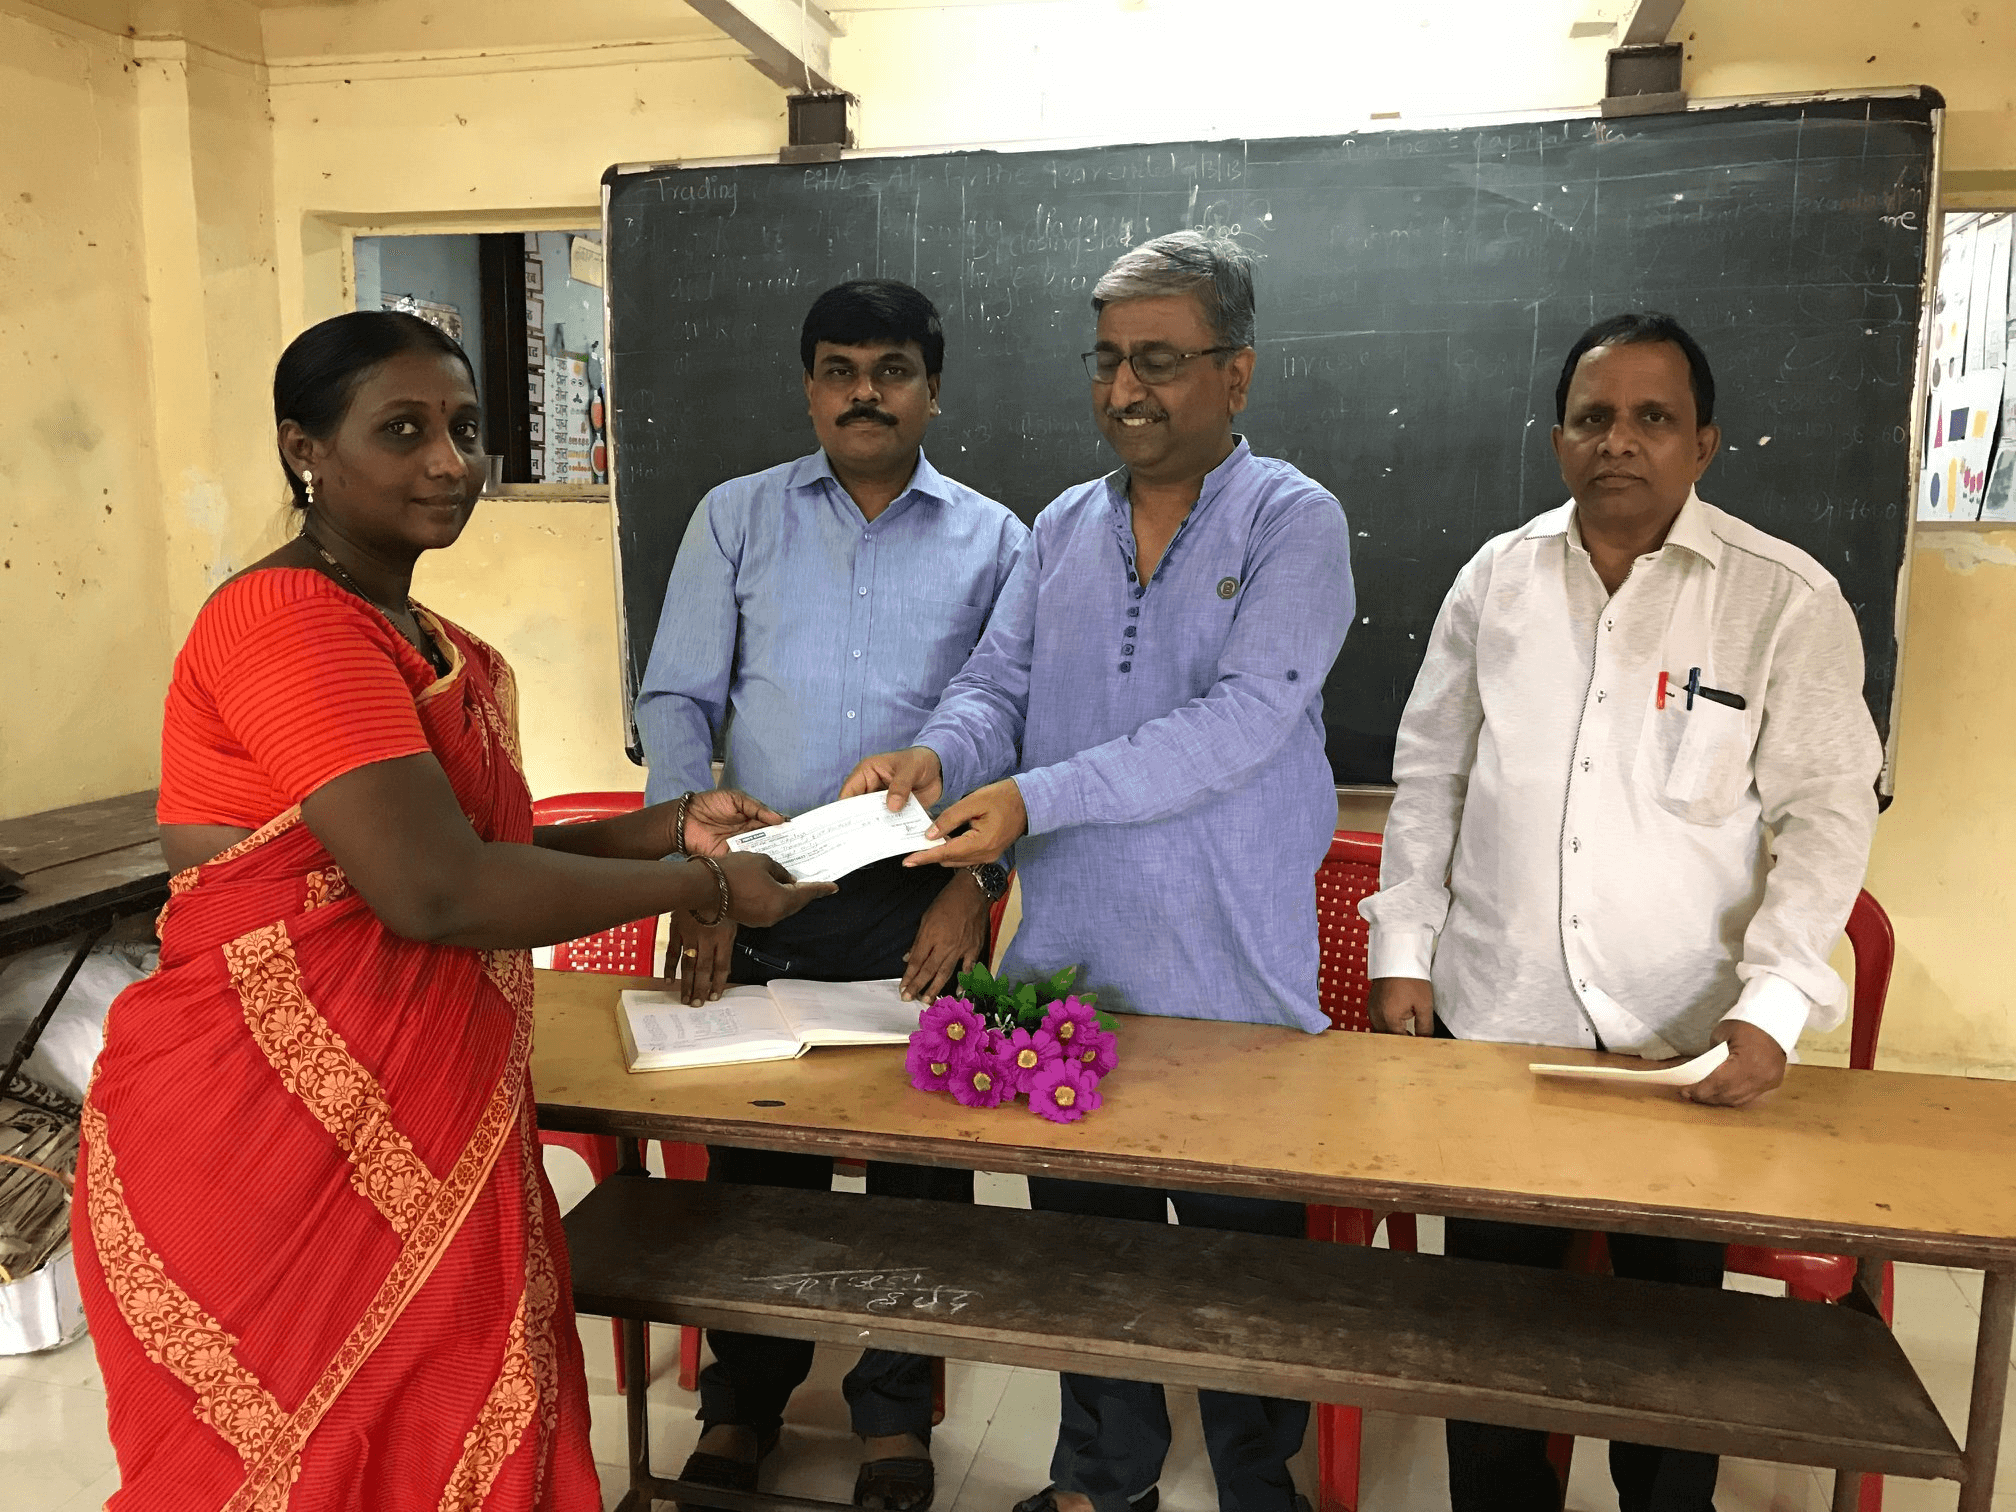 Shri Rampreet Singh Ji and Smt Lalmati Devi Ji Memorial Scholarship